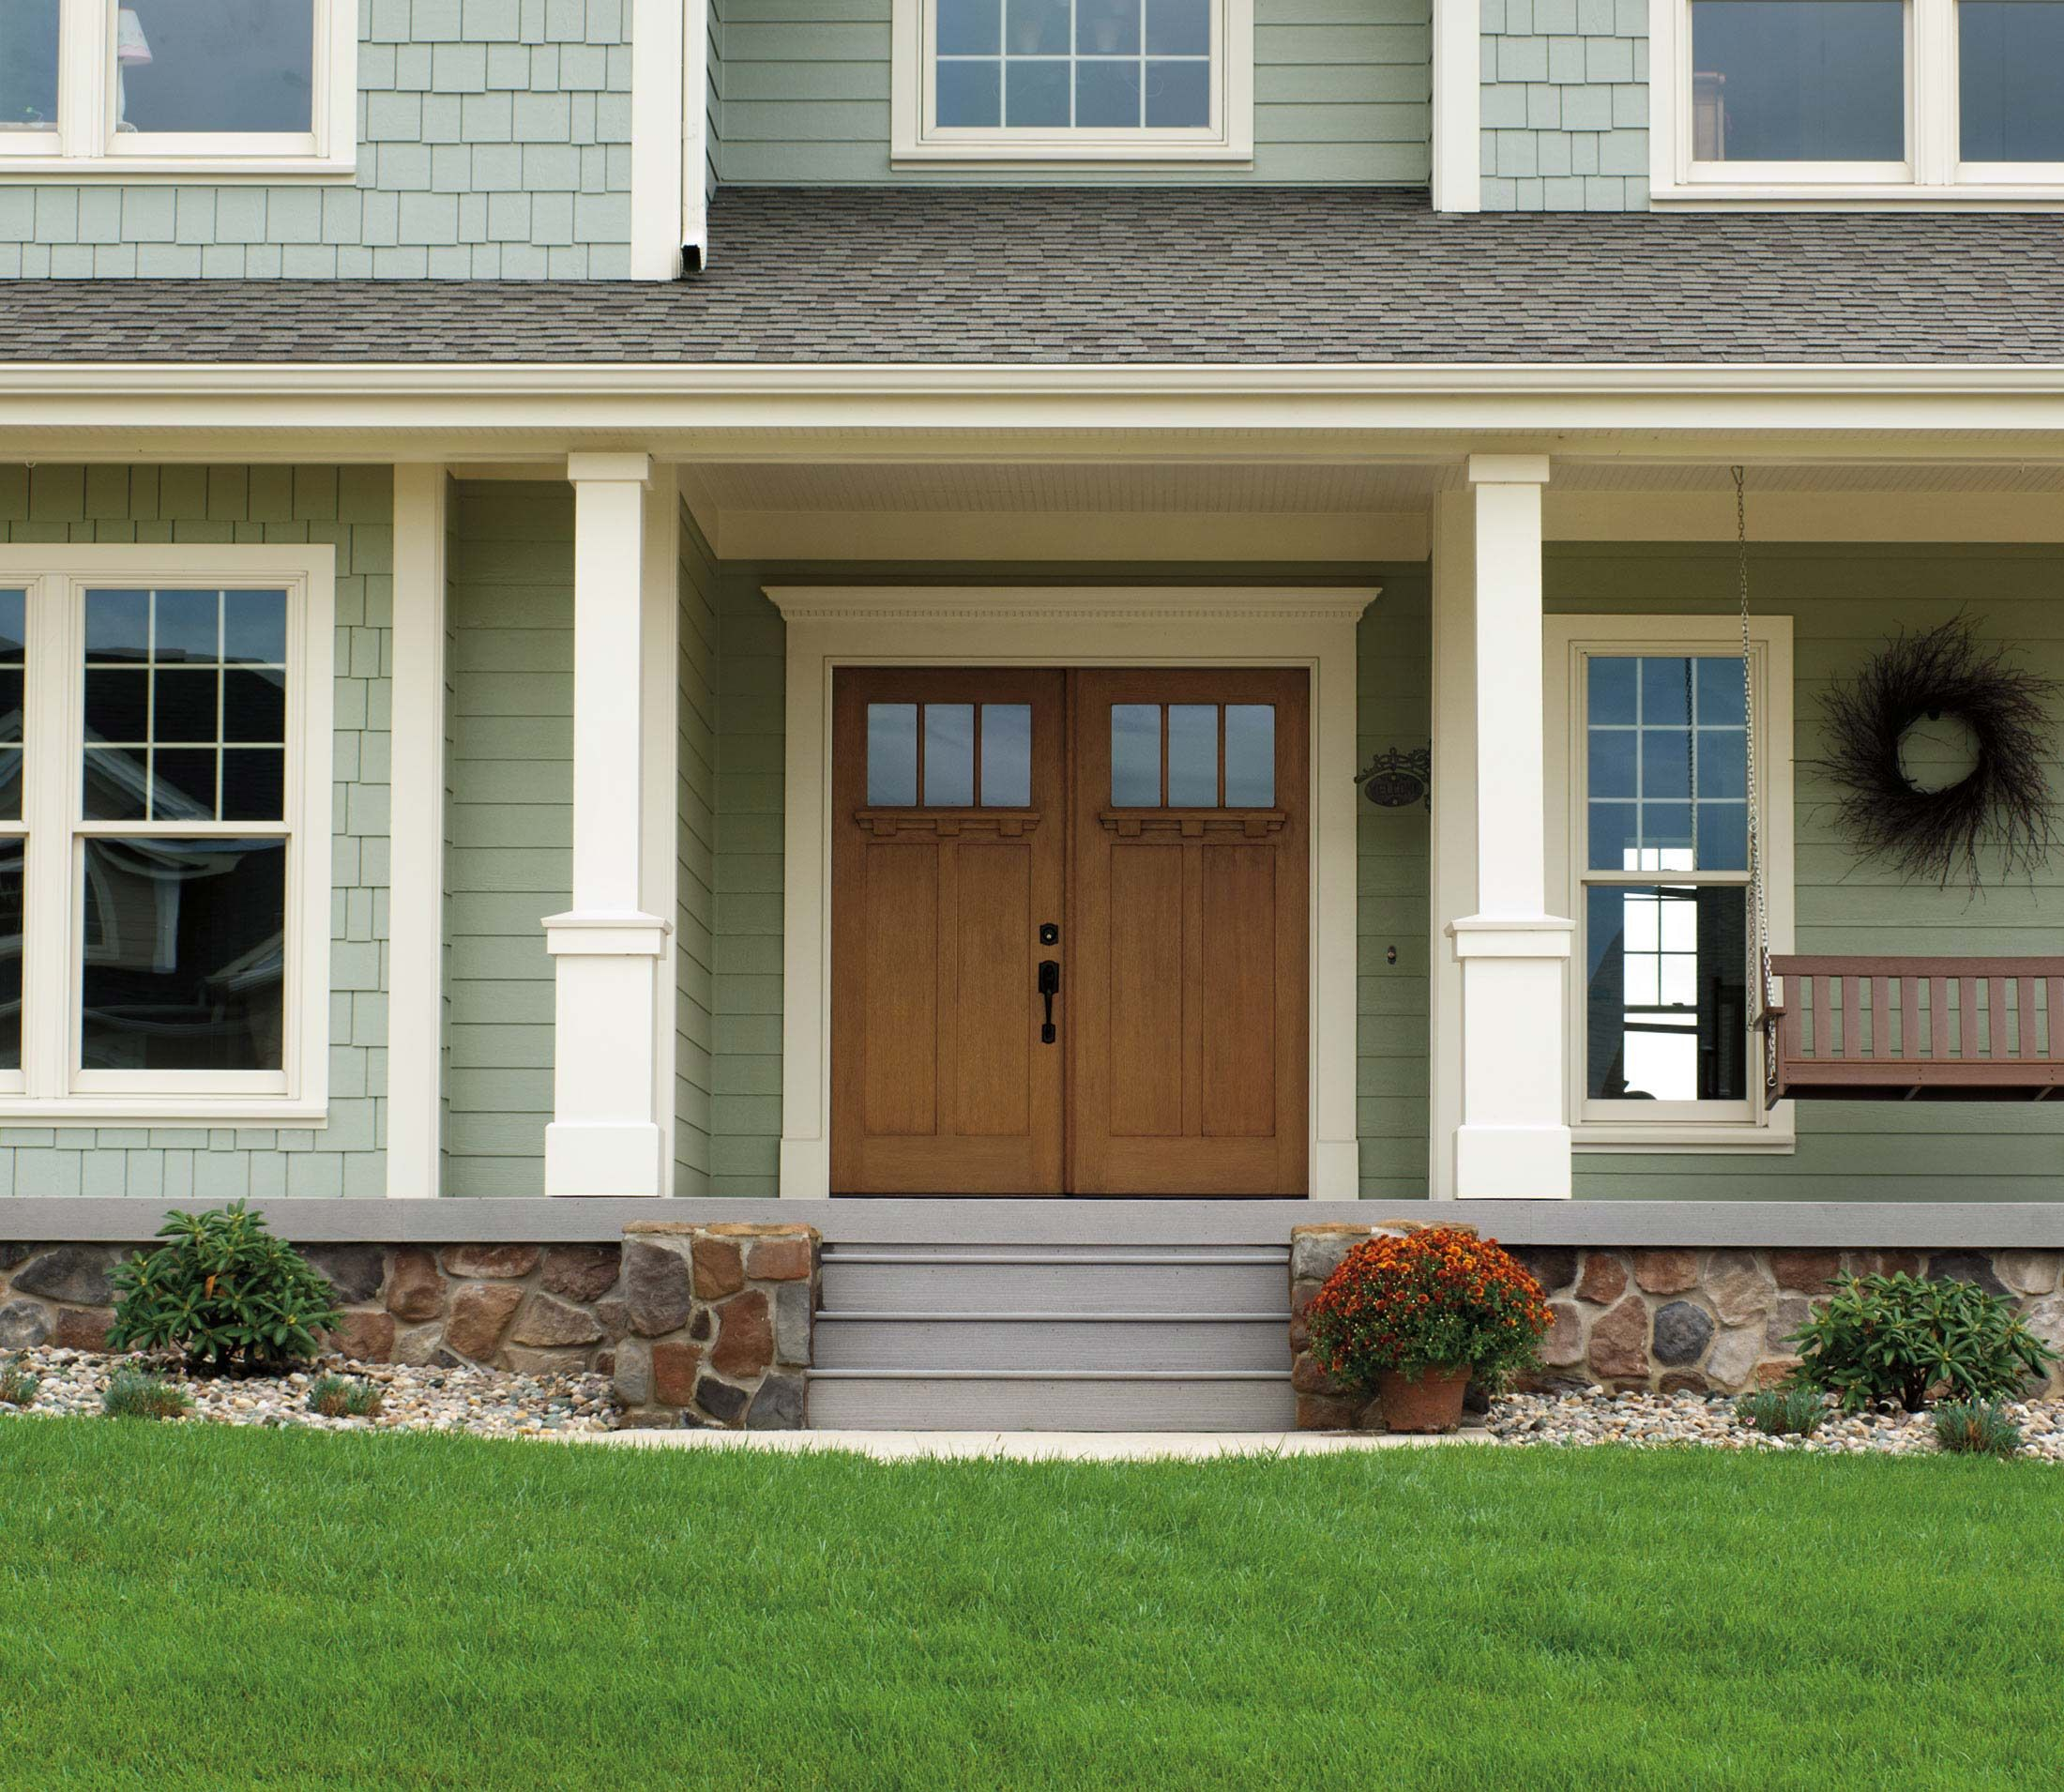 Architect series craftsman light entry door with glass so roomy pinterest for Exterior entry lights